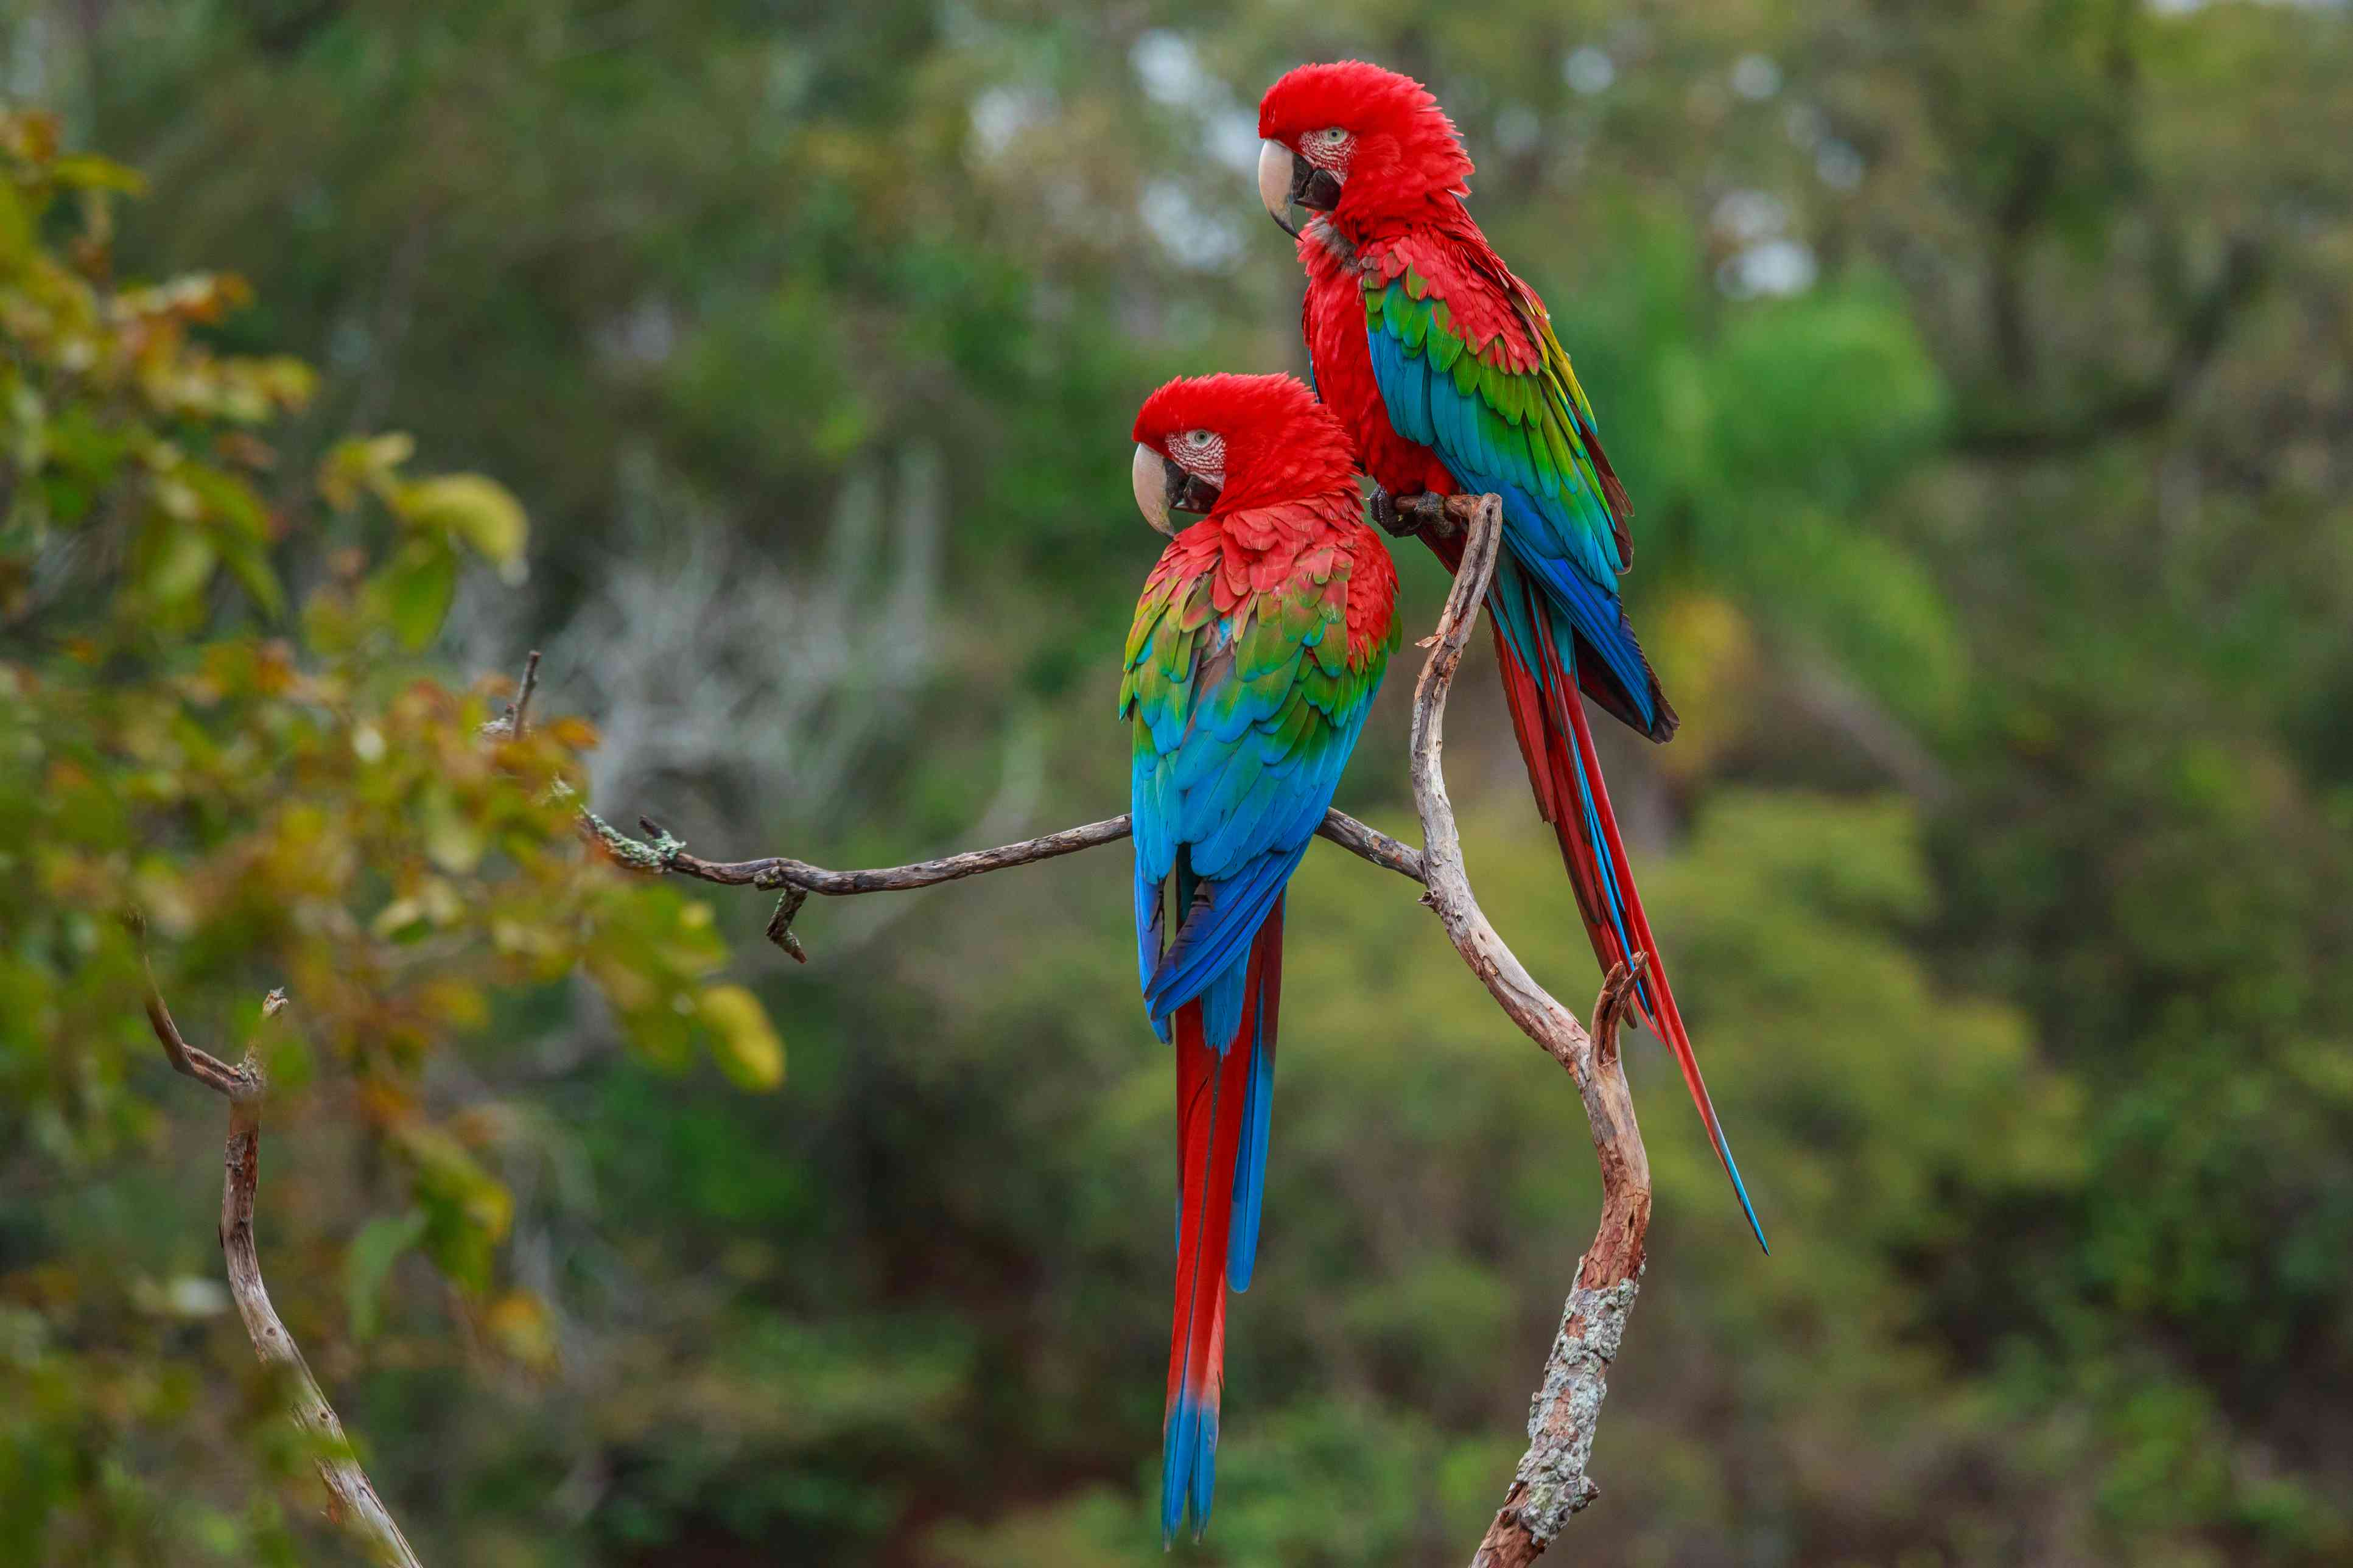 Red-and-green macaws in a tree